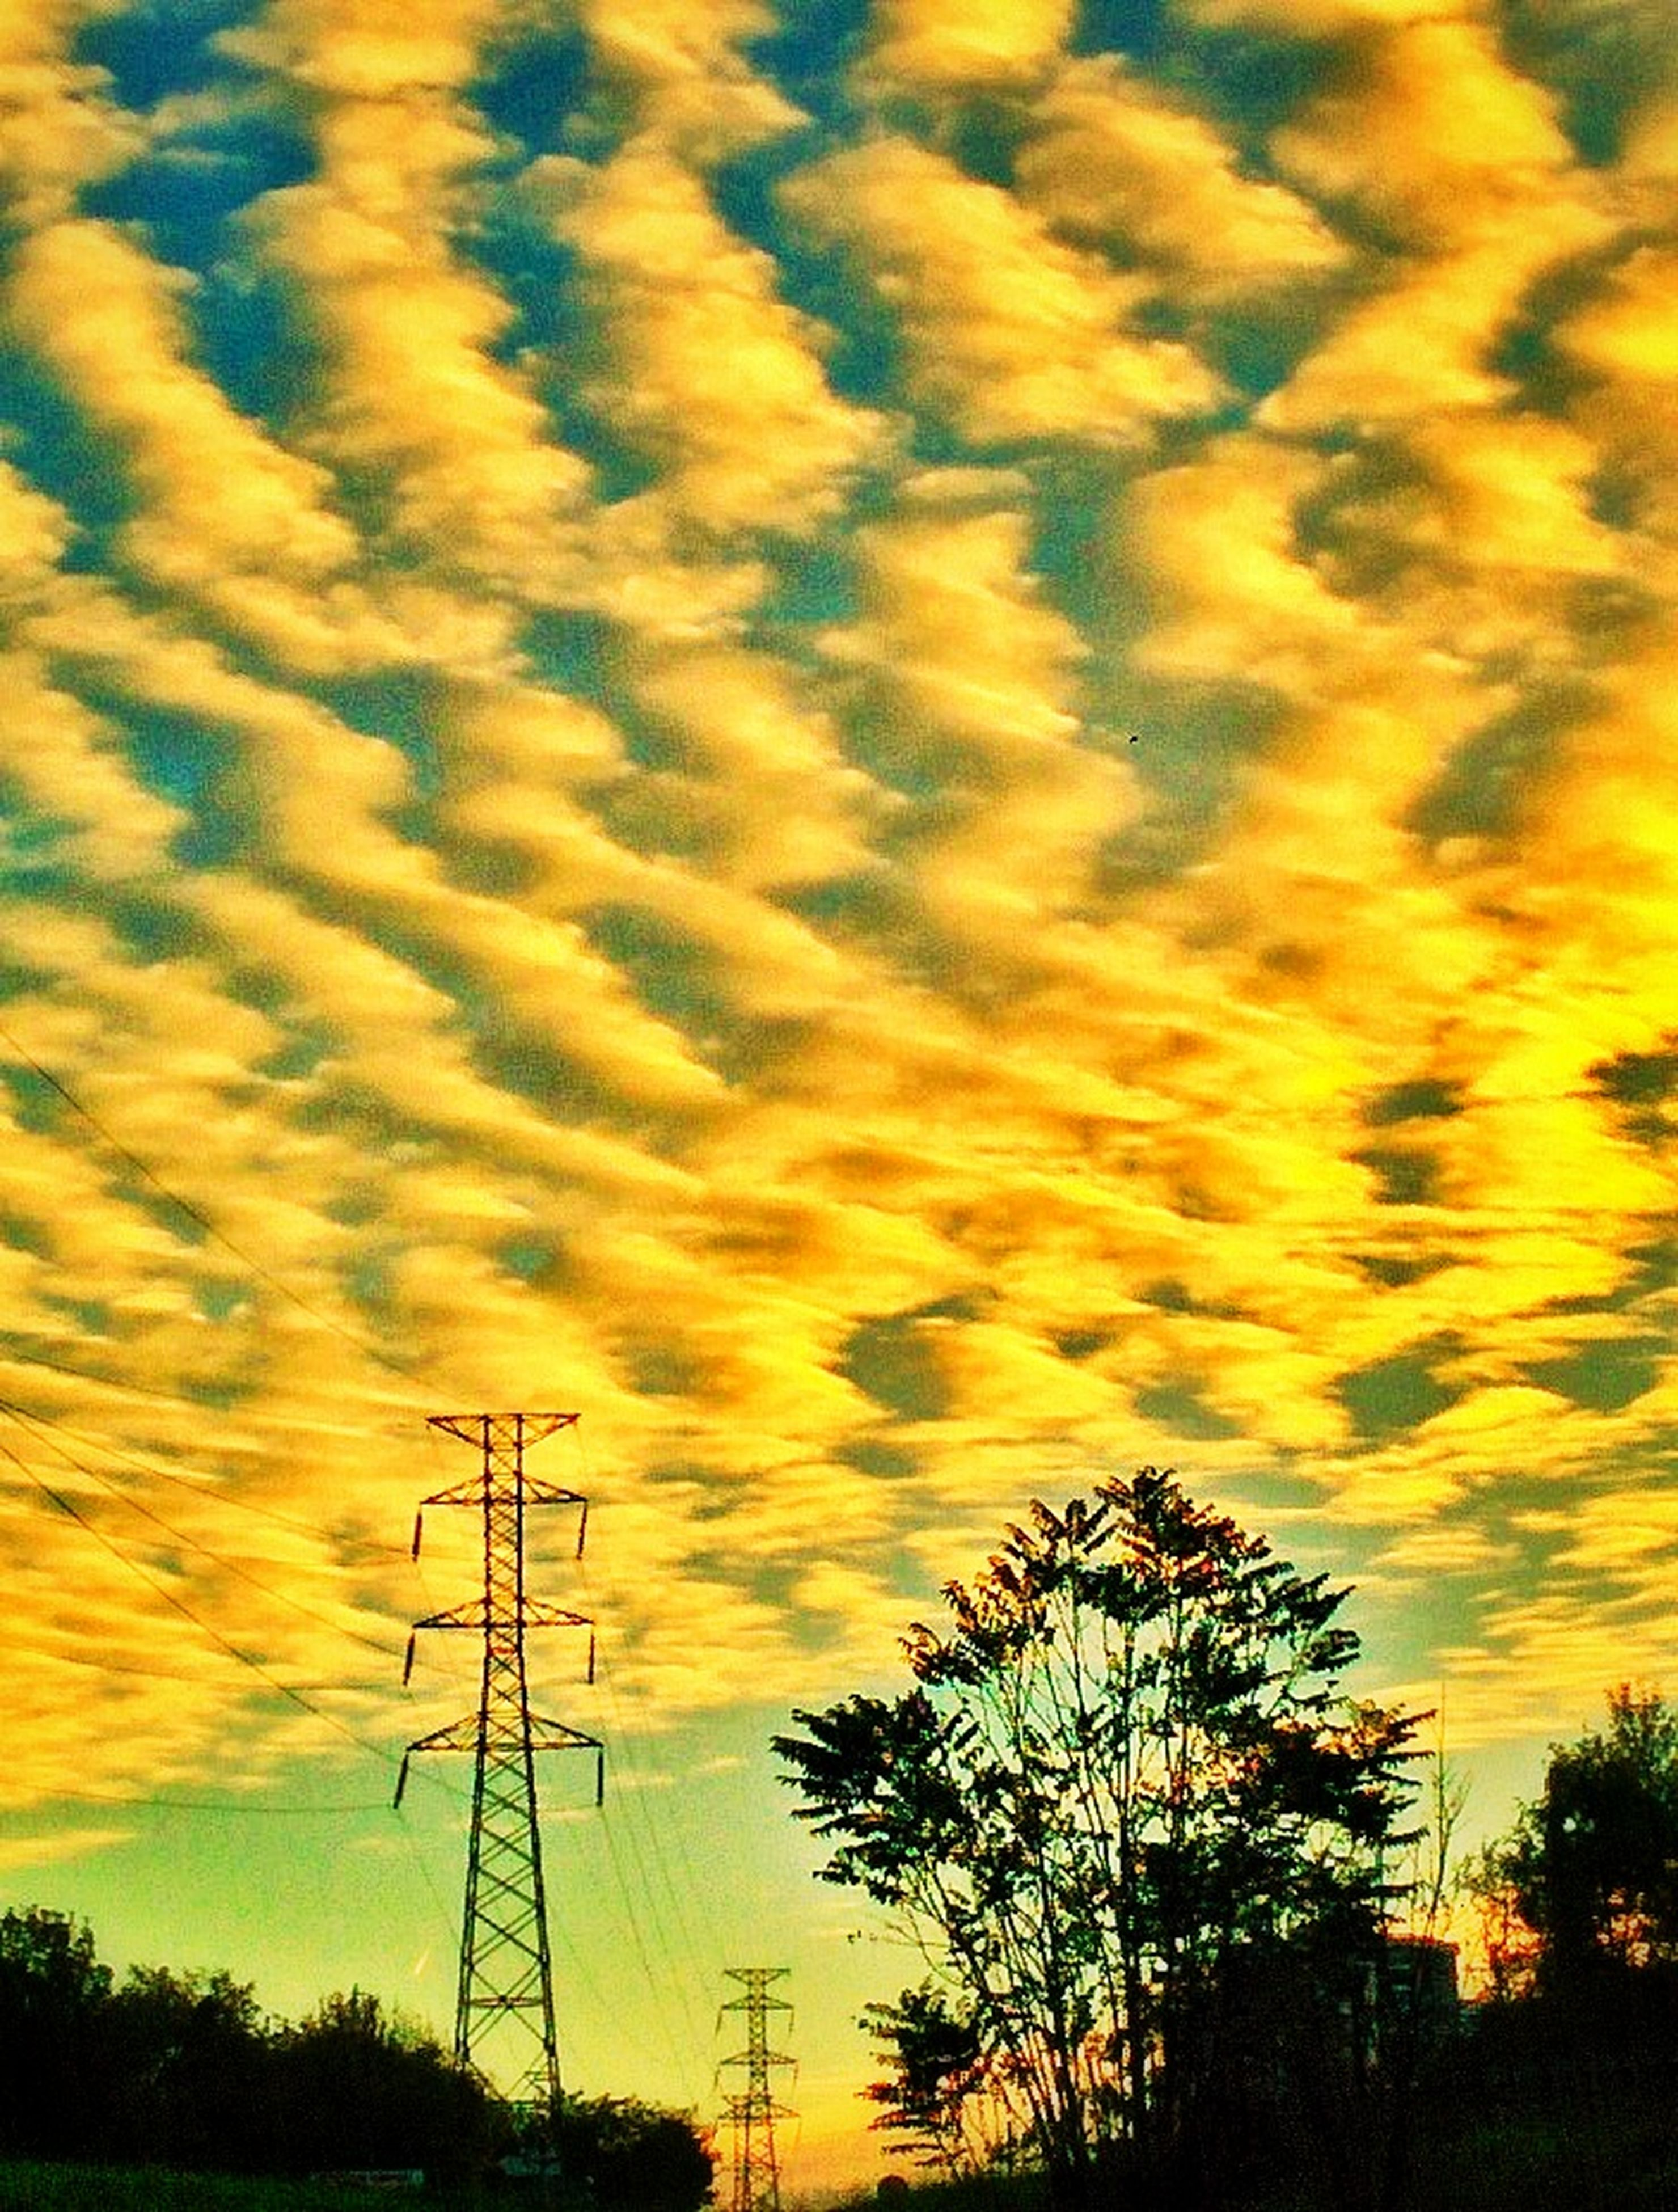 sunset, sky, silhouette, orange color, beauty in nature, tranquility, scenics, cloud - sky, tranquil scene, tree, dramatic sky, nature, low angle view, cloud, cloudy, power line, idyllic, electricity pylon, landscape, moody sky